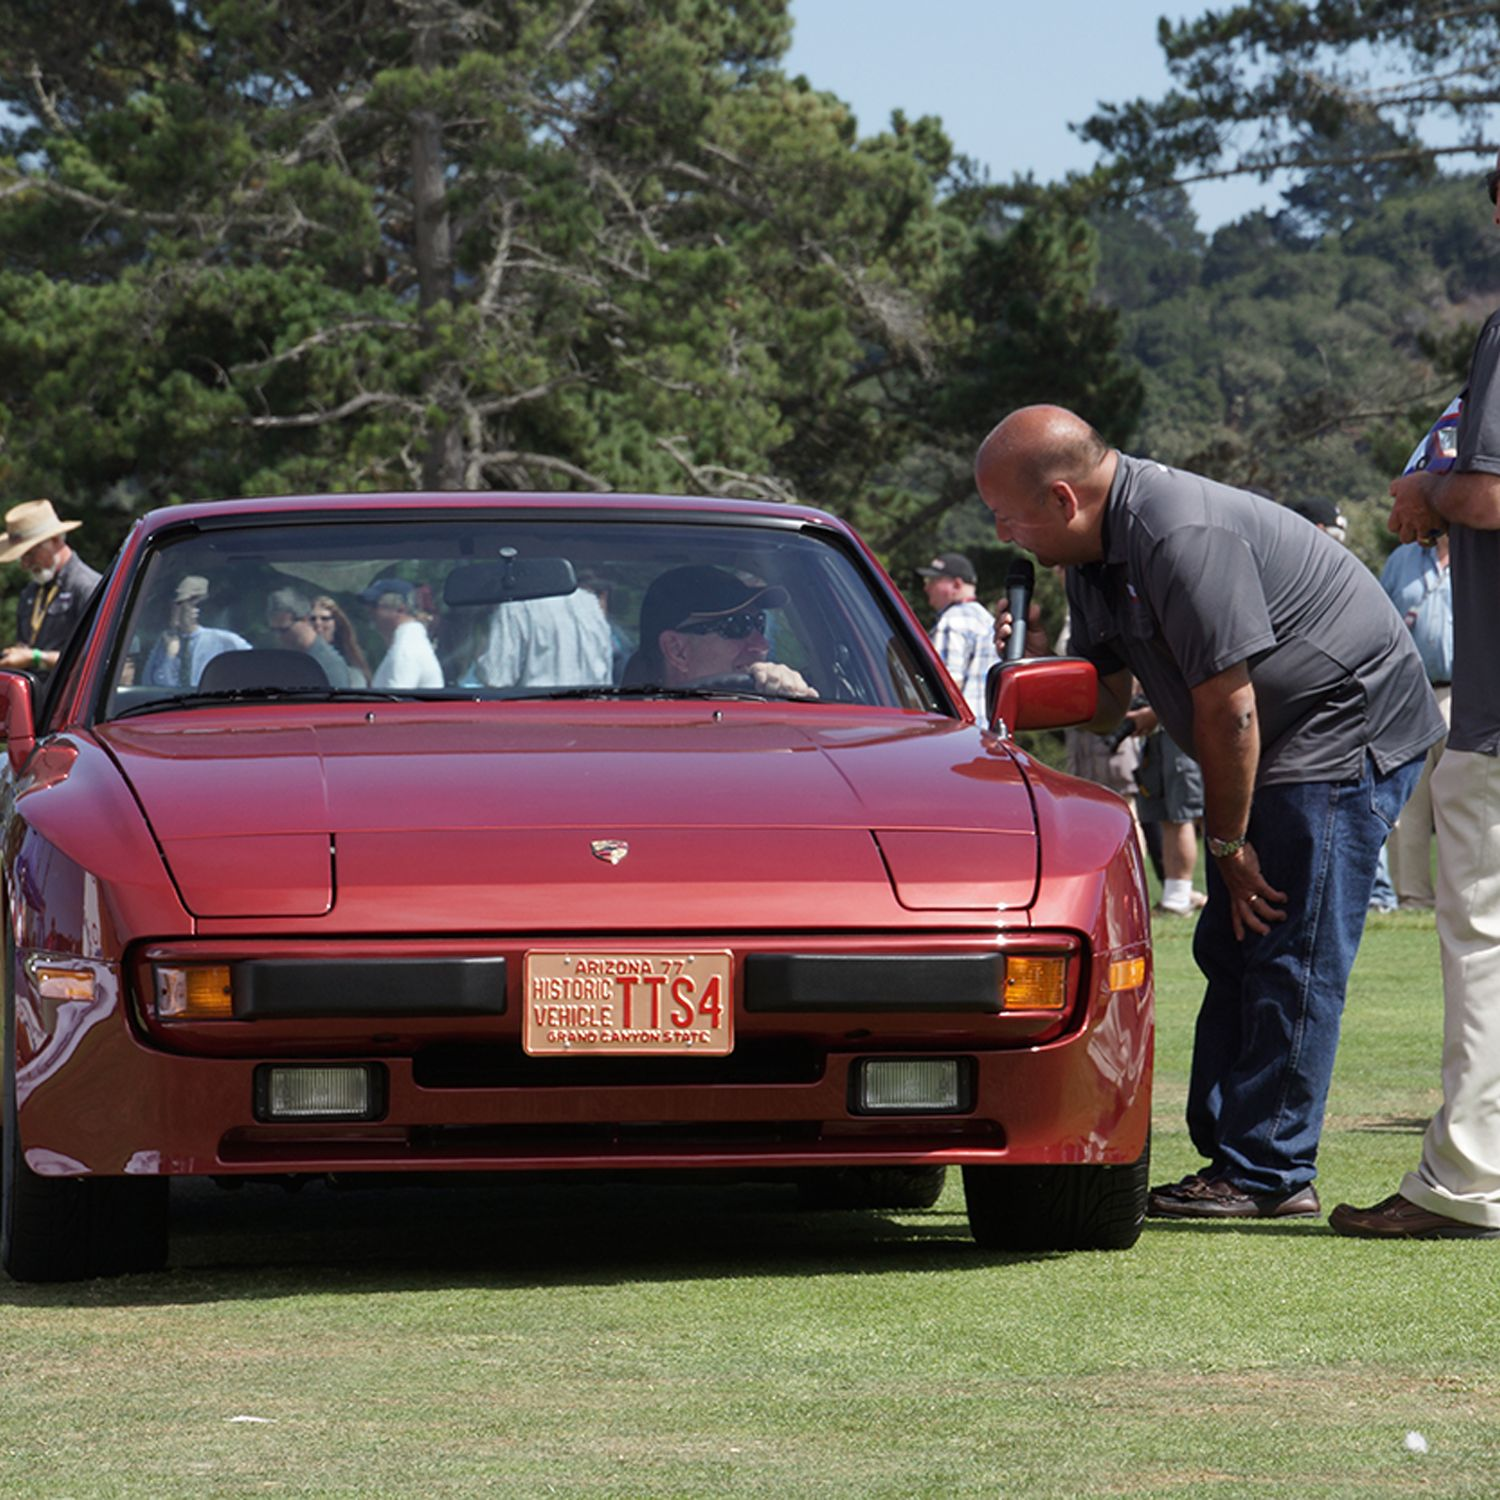 <p>You like Porsches? Of course you do—everyone in Monterey loves Porsches, and loves to drive tastefully. Porsches galore will be descending upon the Rancho Cañada Golf Club this year, especially the revolutionary, groundbreaking, water-cooled ones—you know, the <em>real</em> Porsches. It's the 40th anniversary of the Porsche that saved Porsche, so 924s, 944s and 928s will taking the honors. Honoring the front-engined cars and risking annoying the so-called purists? That's some risky business. </p>